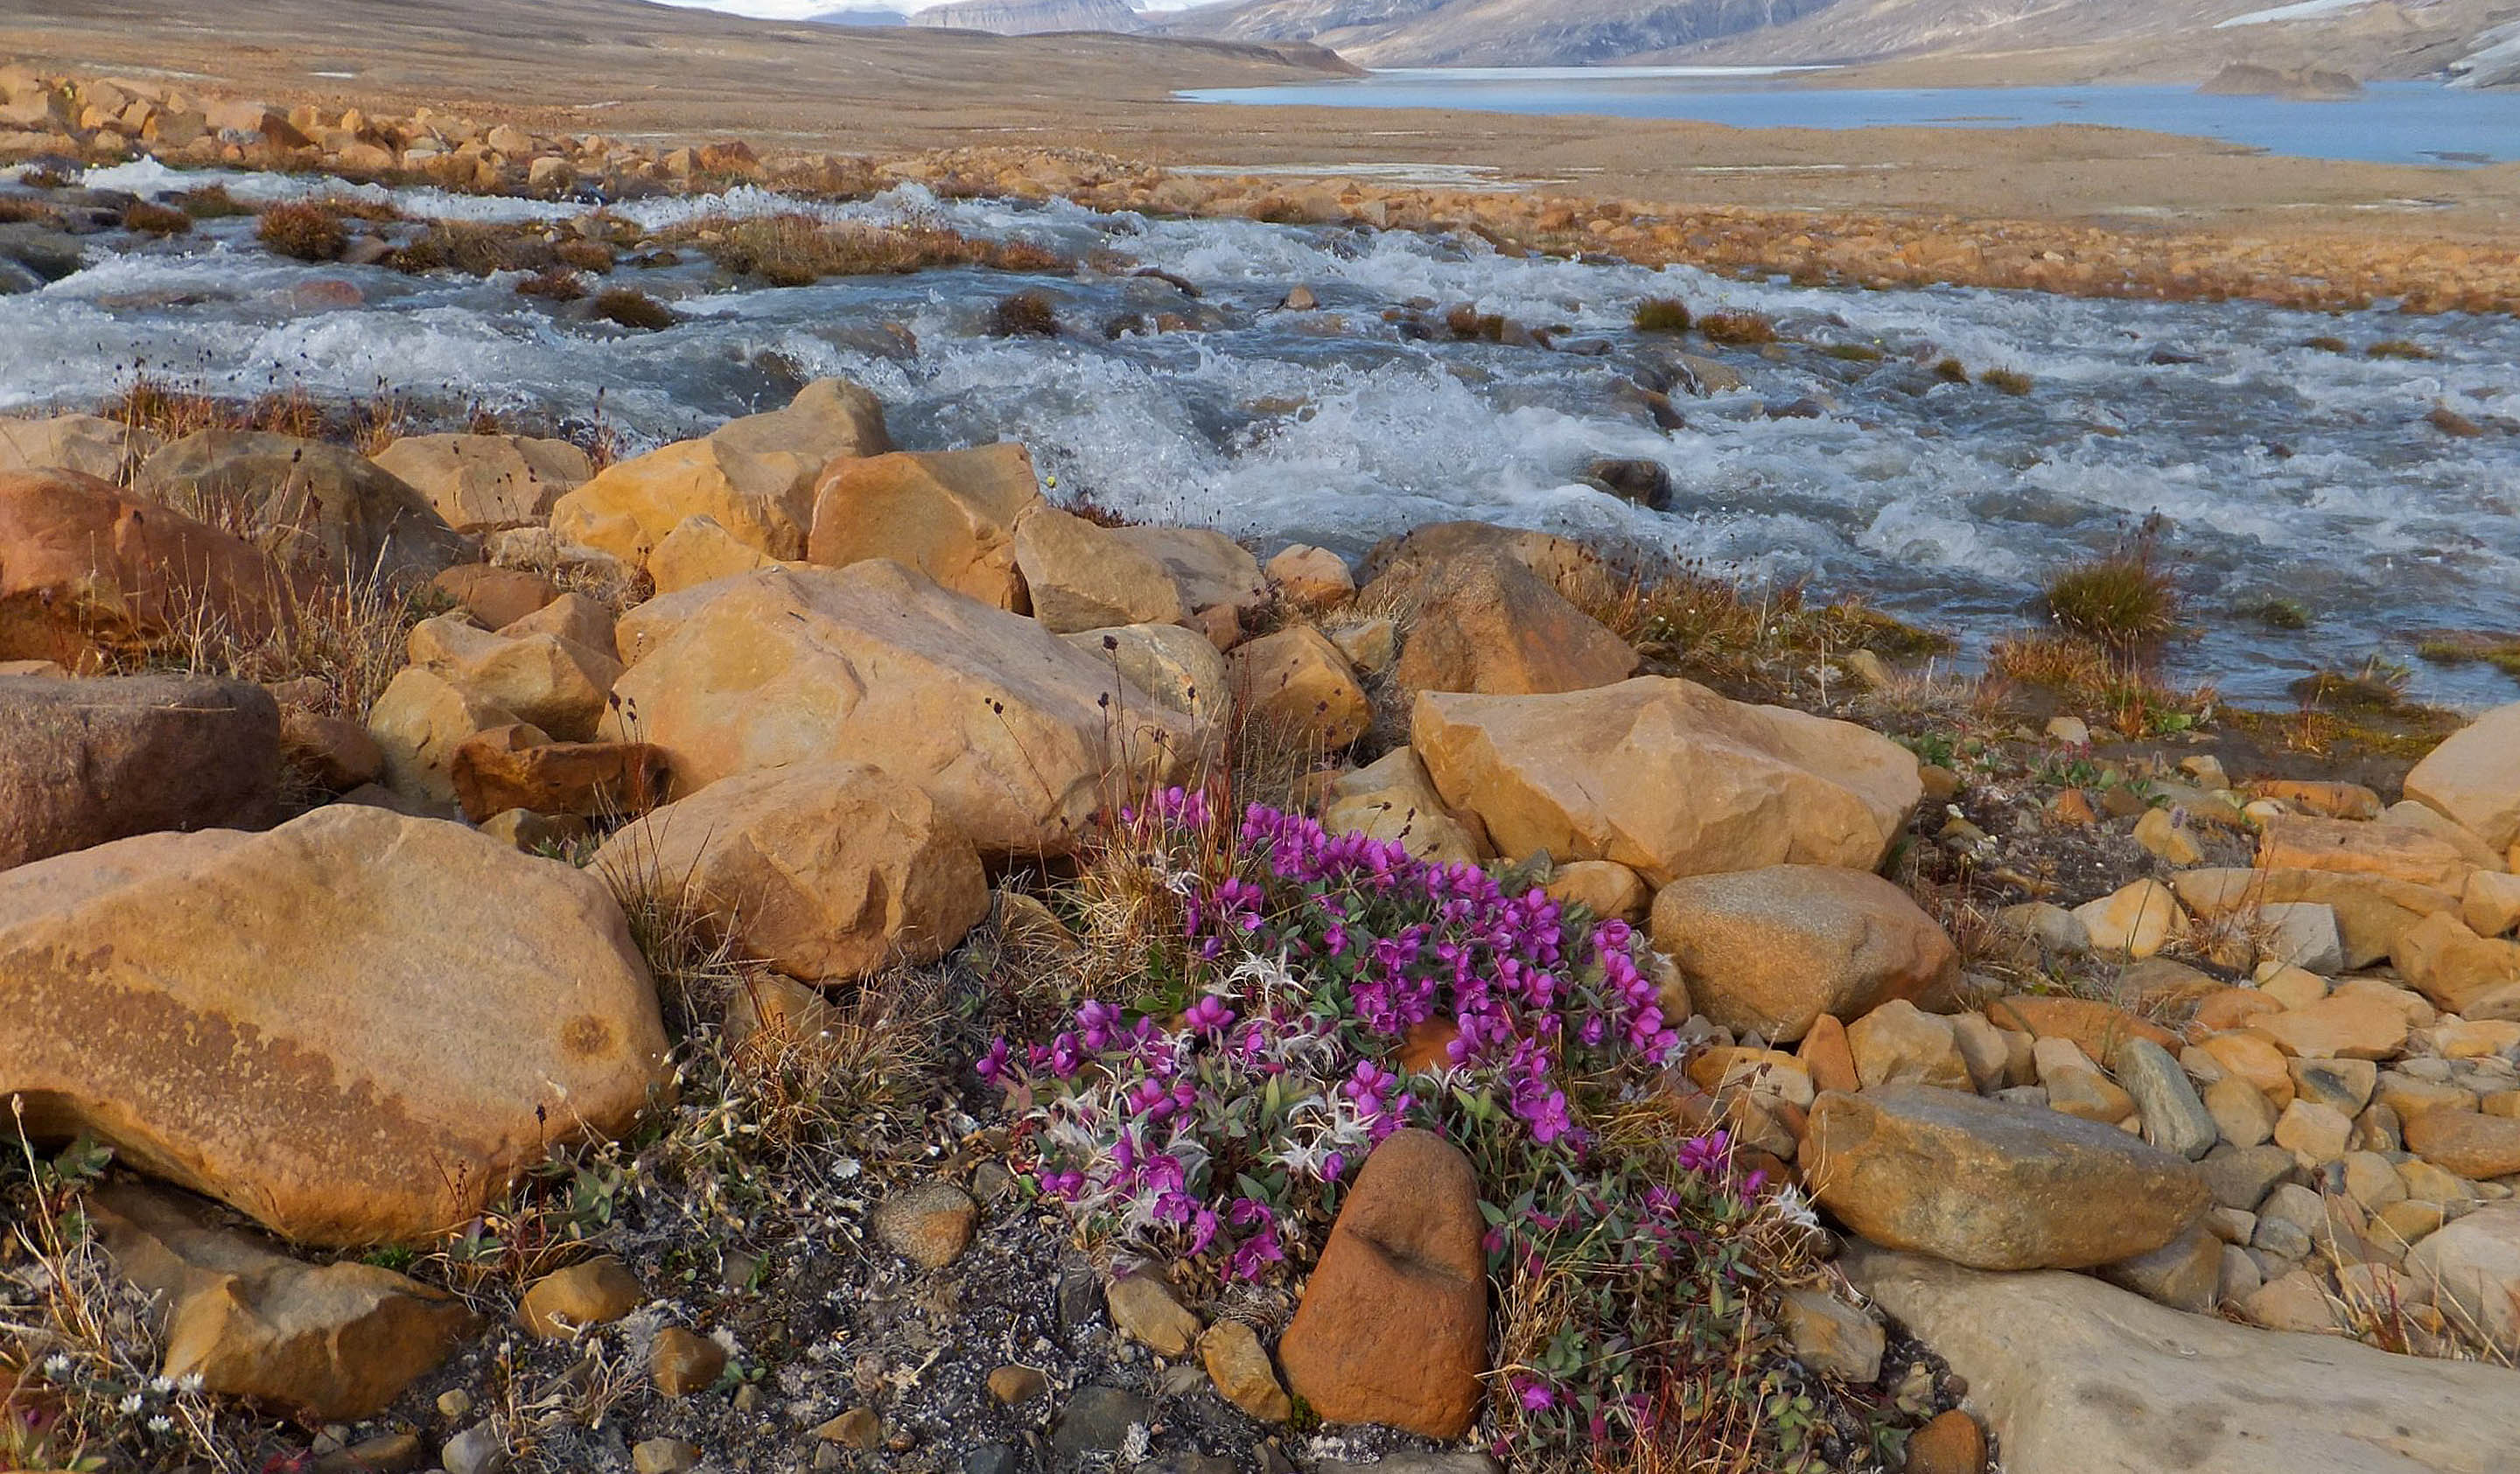 (Photo: Getty Images) River Flowers of Chukotka